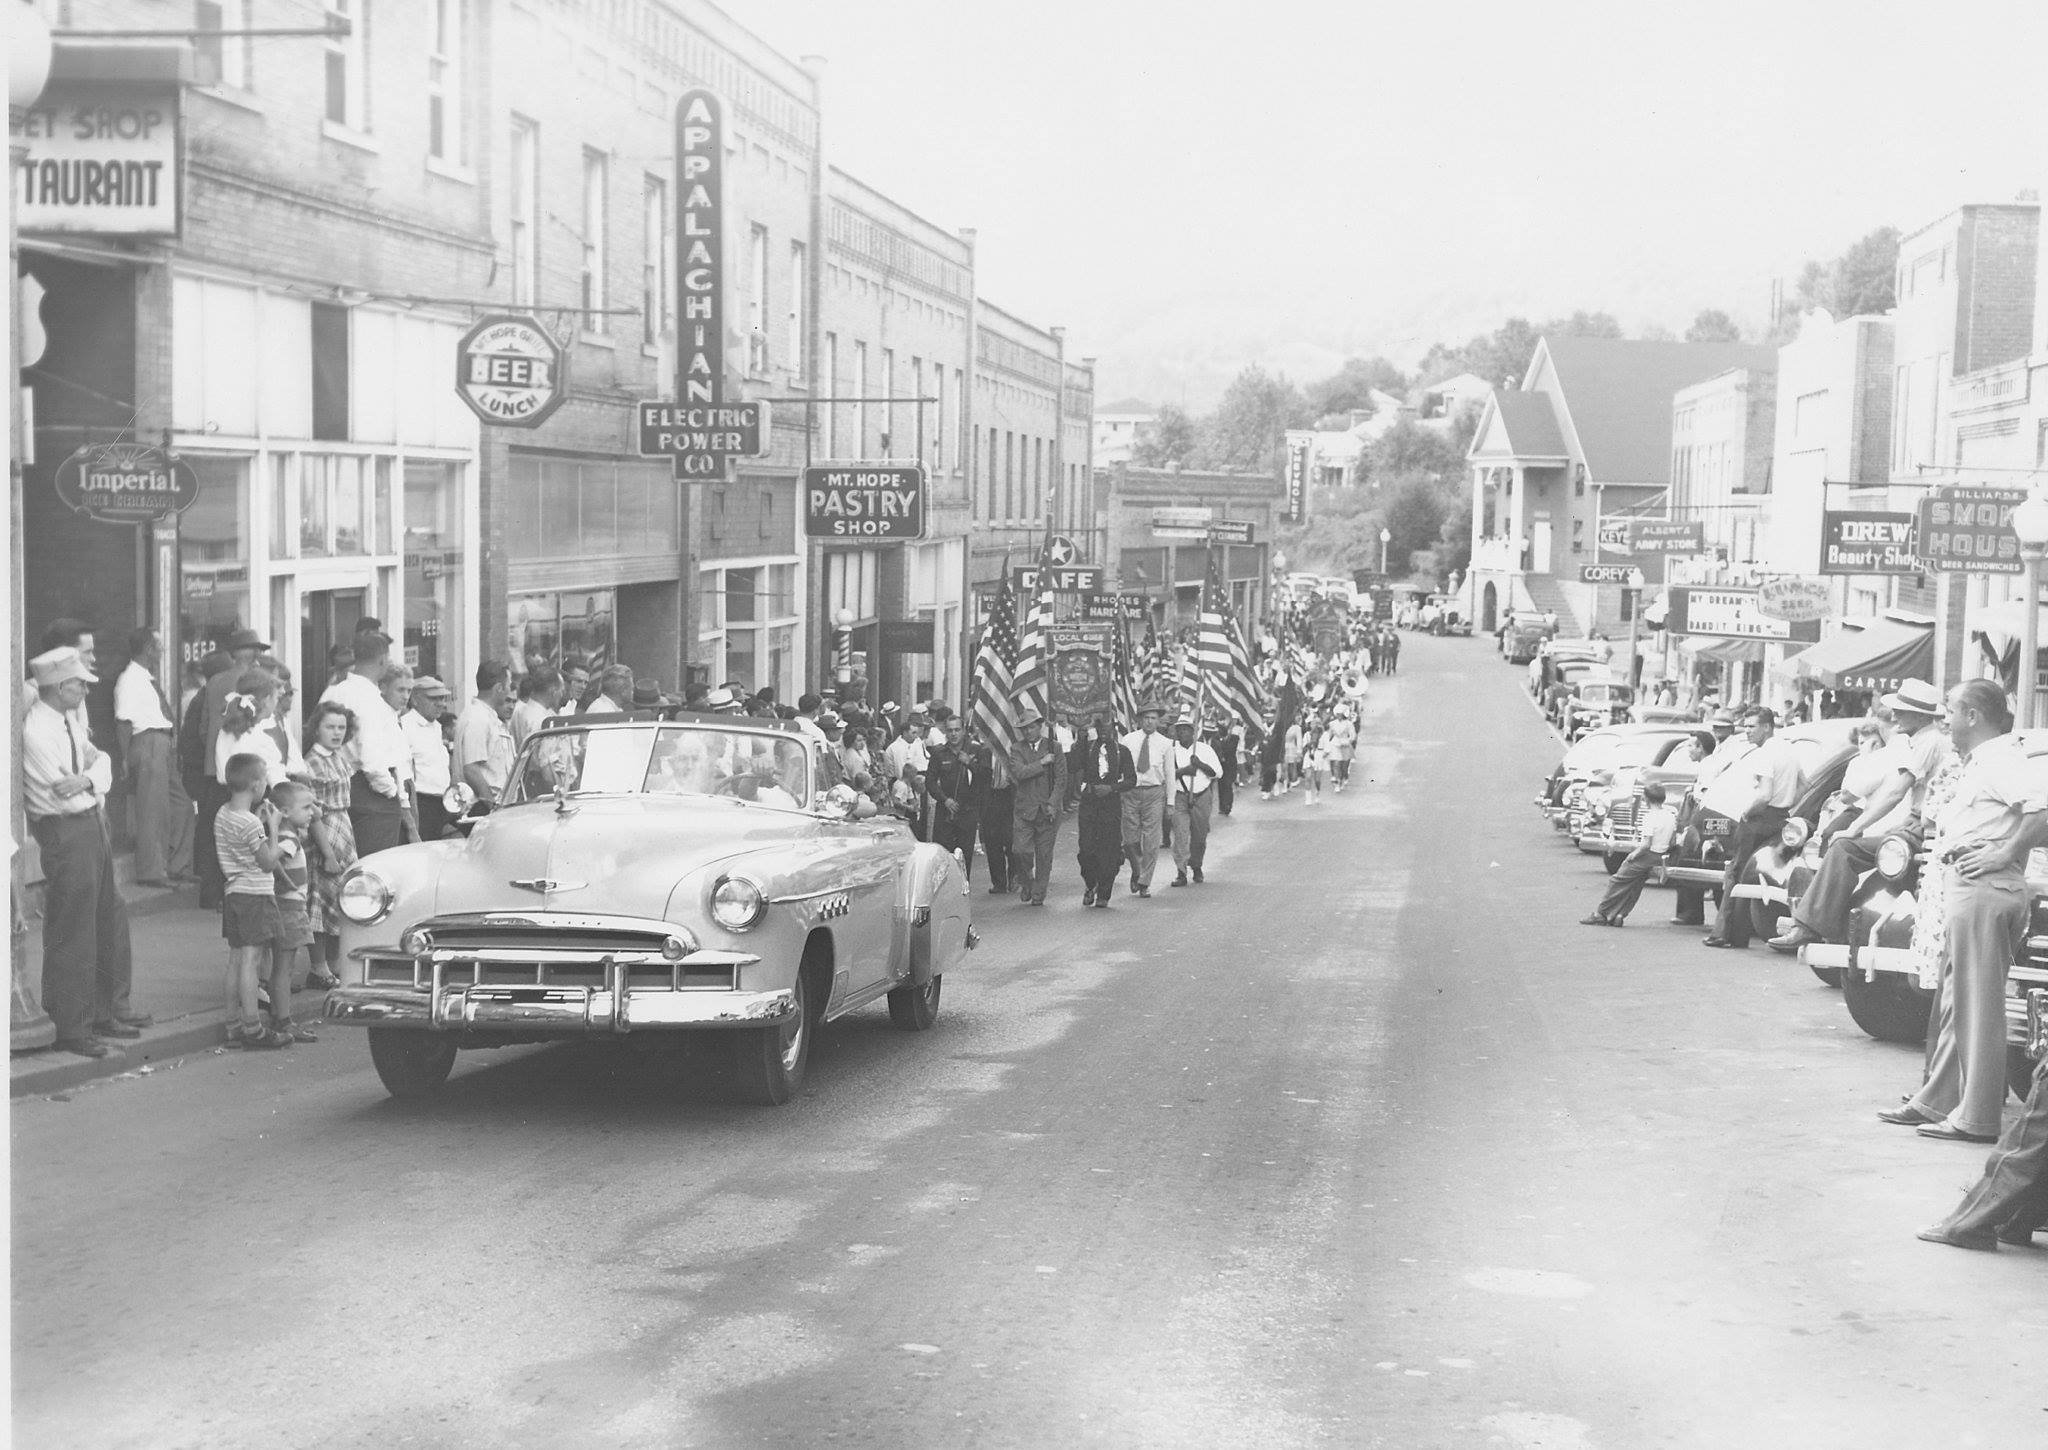 Labor Day Parade and U.M.W.A. Rally, 1949.